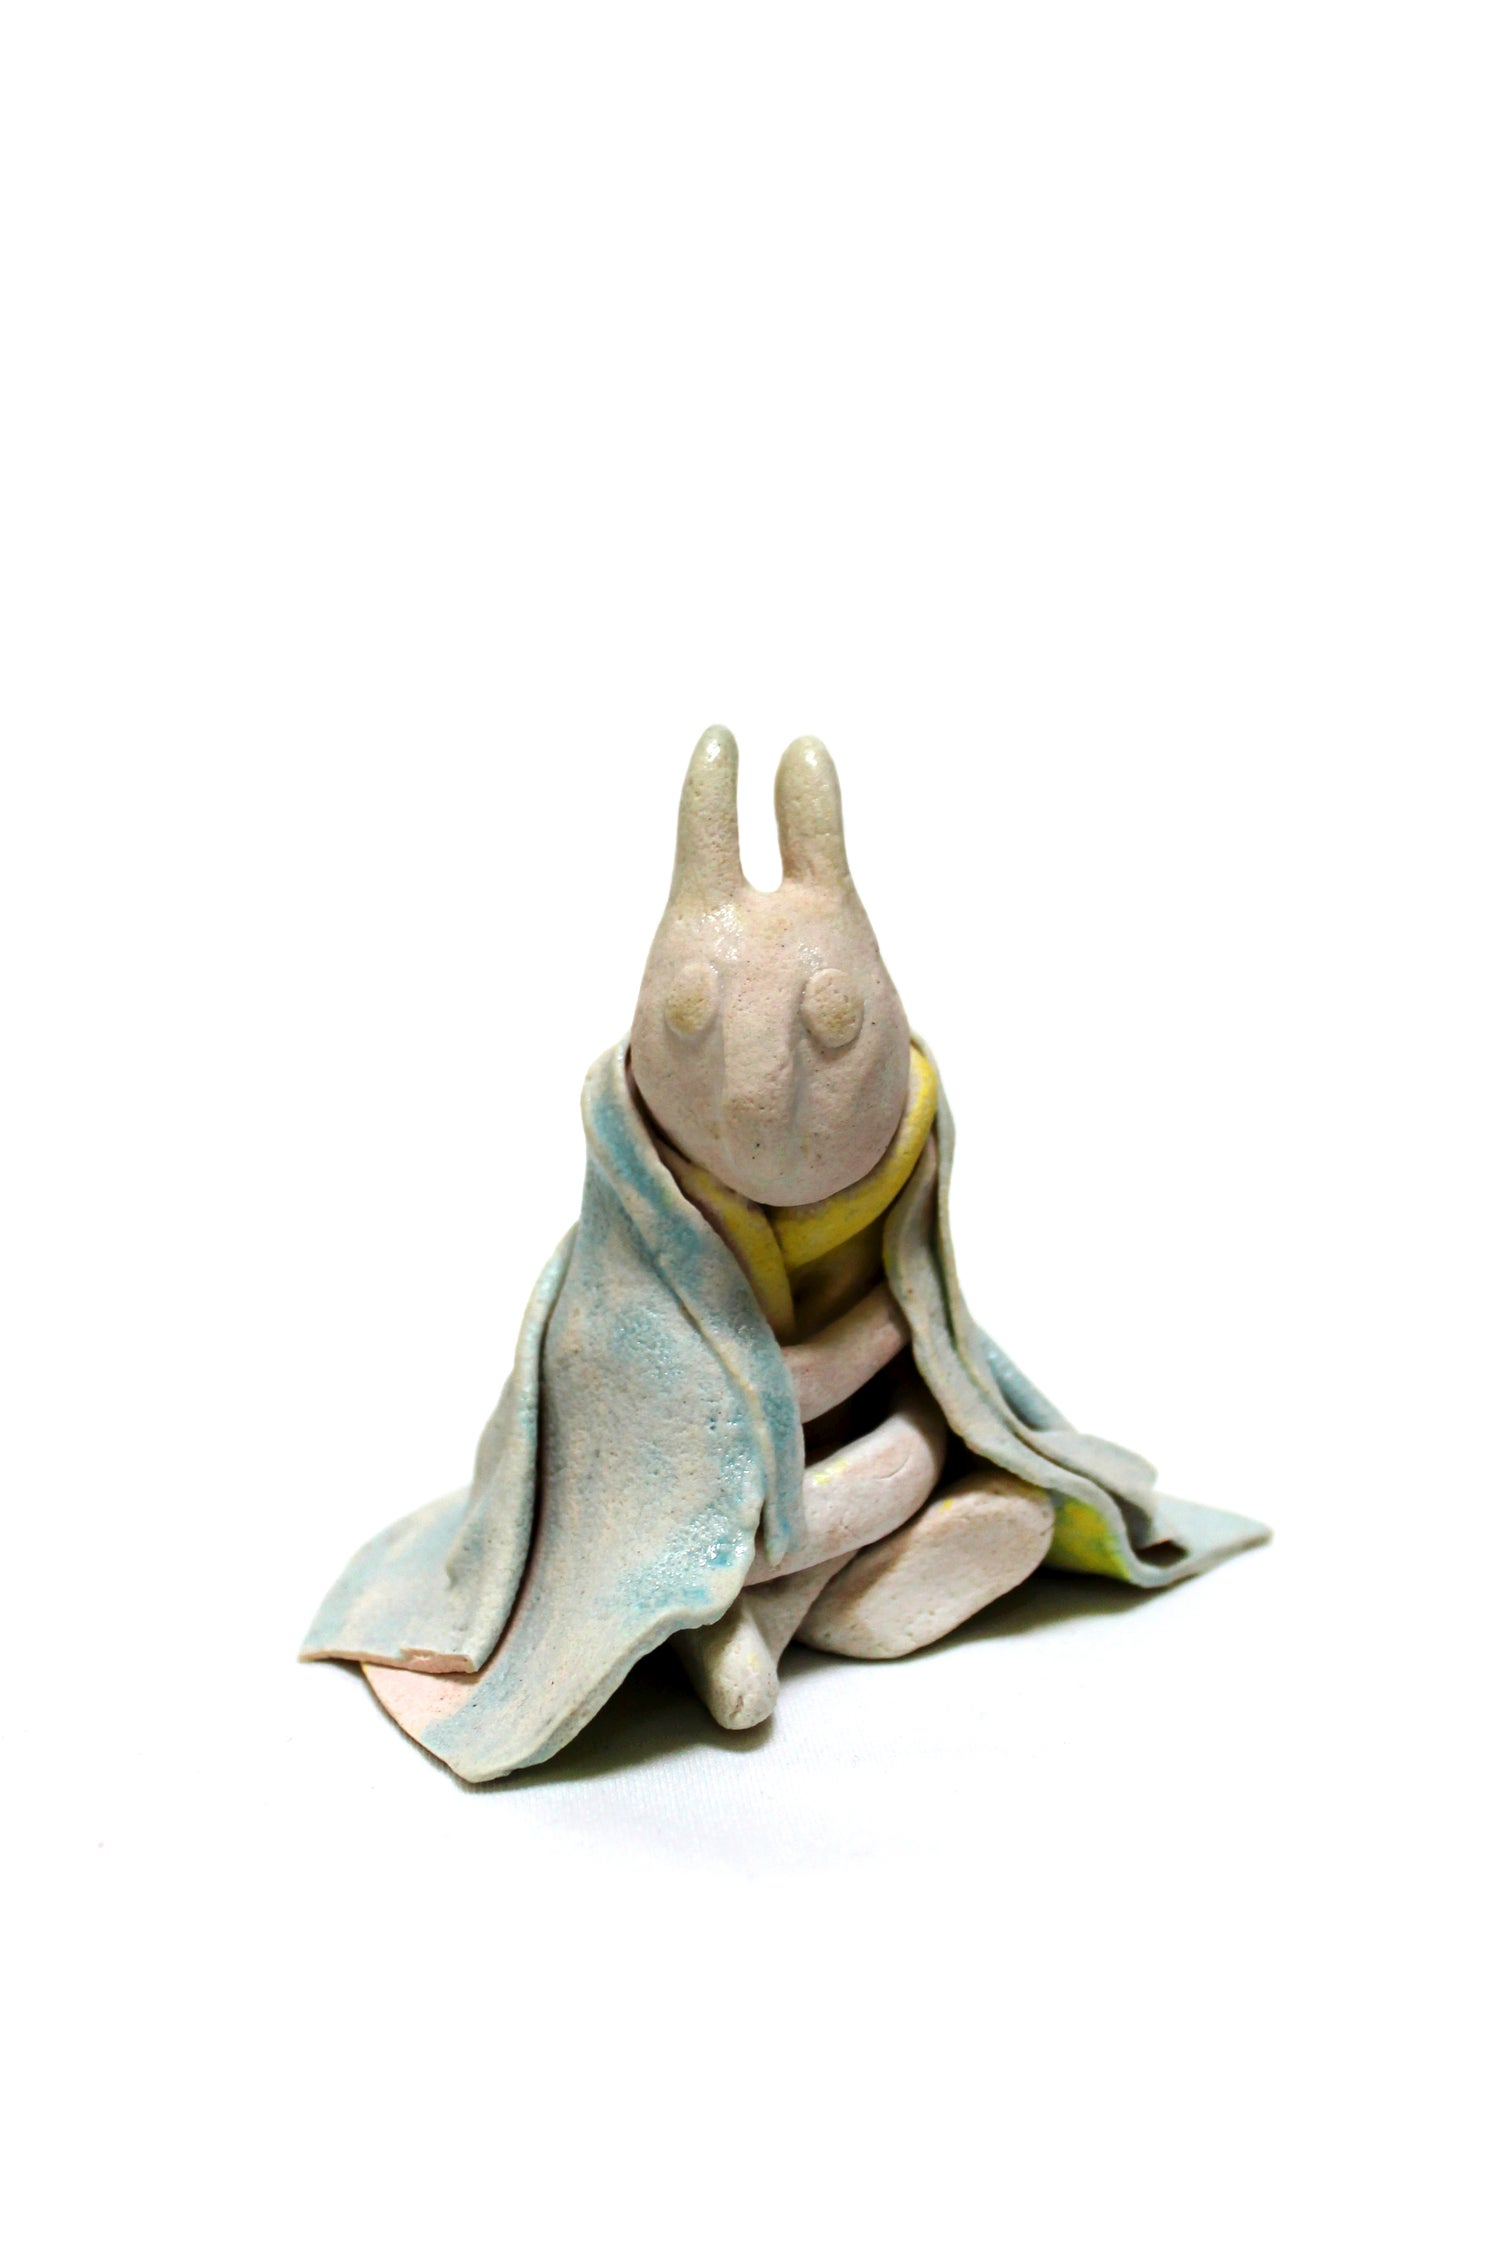 Image of 'Winter' - Pottery figure